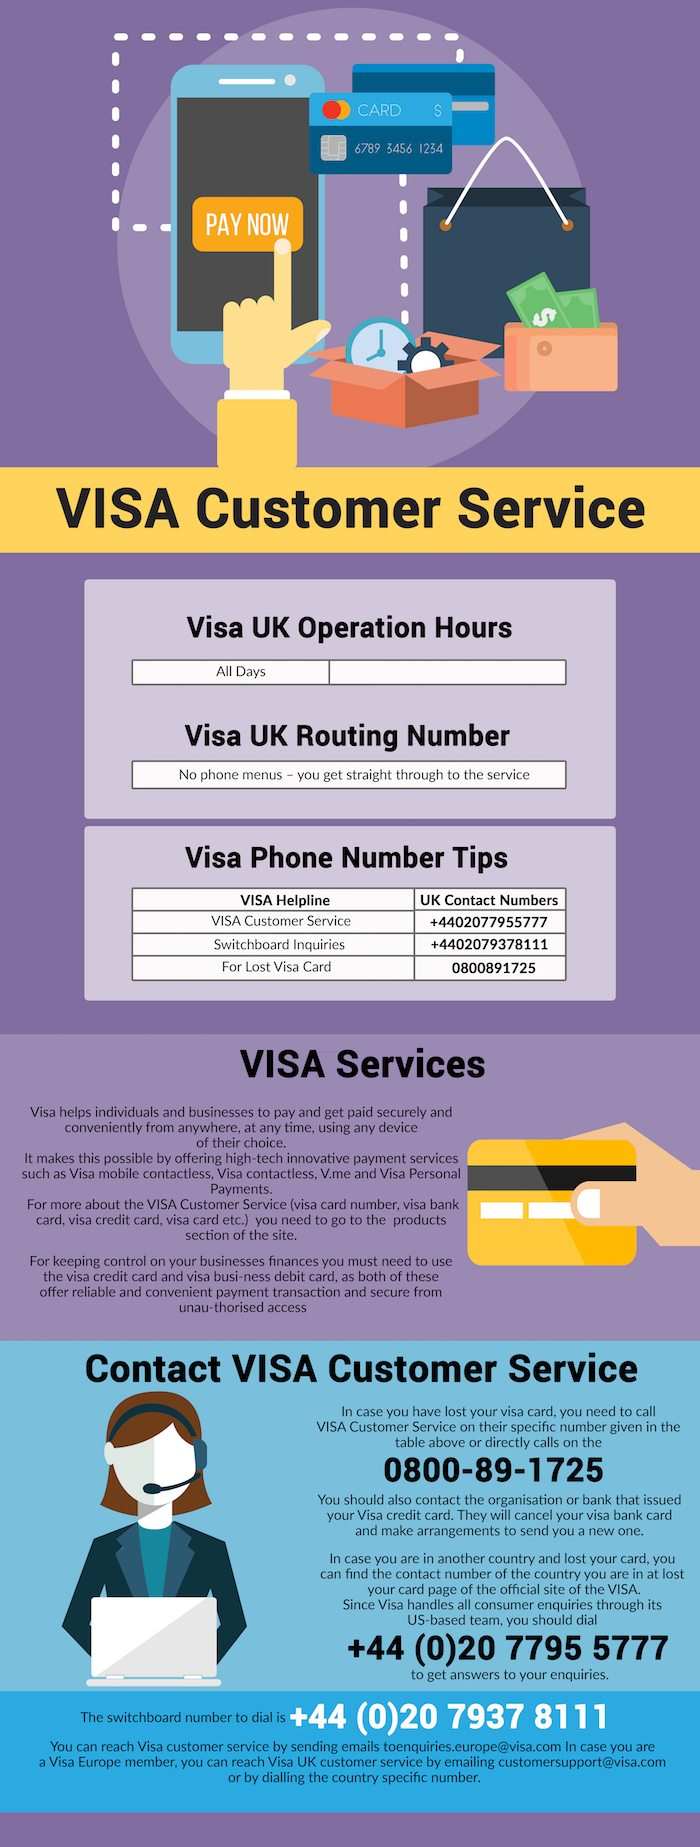 You can contact UK Visas and Immigration from inside or outside the UK. Contact centre staff cannot give you advice about your personal circumstances.